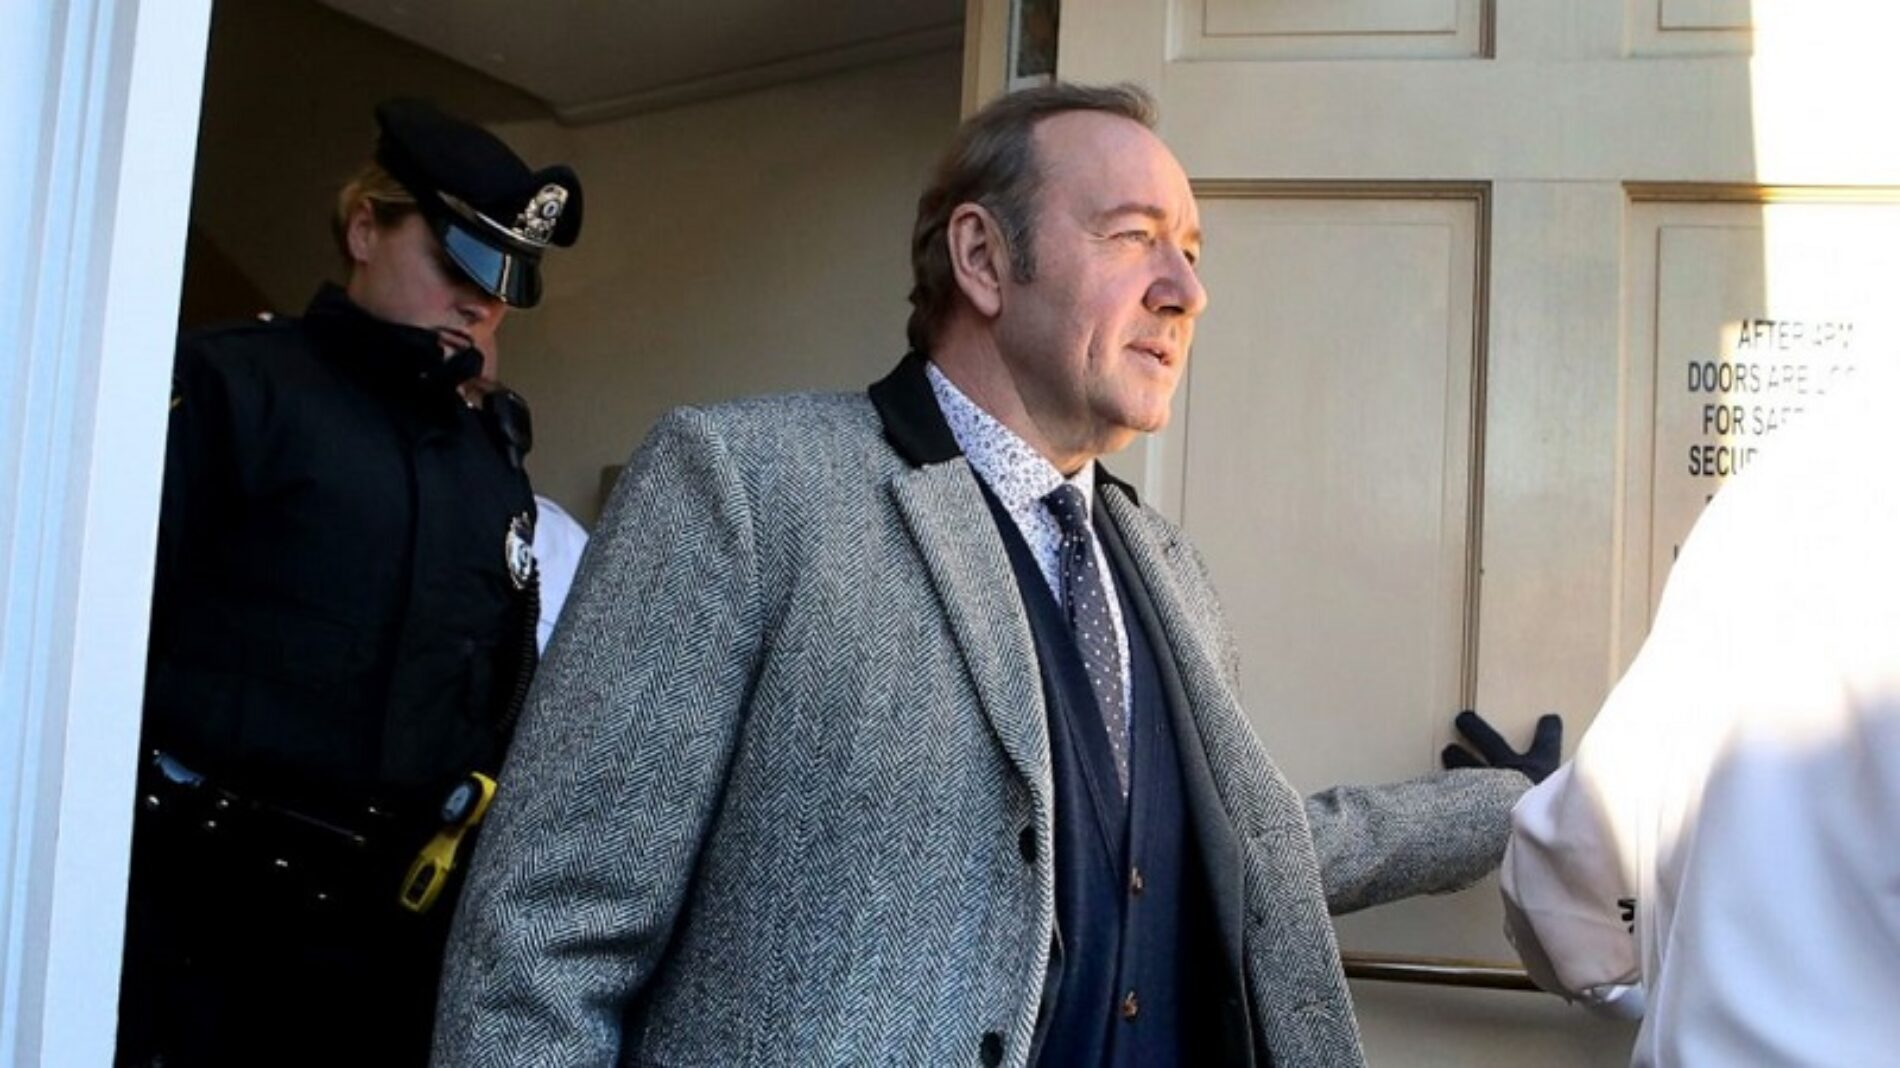 Kevin Spacey to make a comeback in first film role following sexual assault allegations